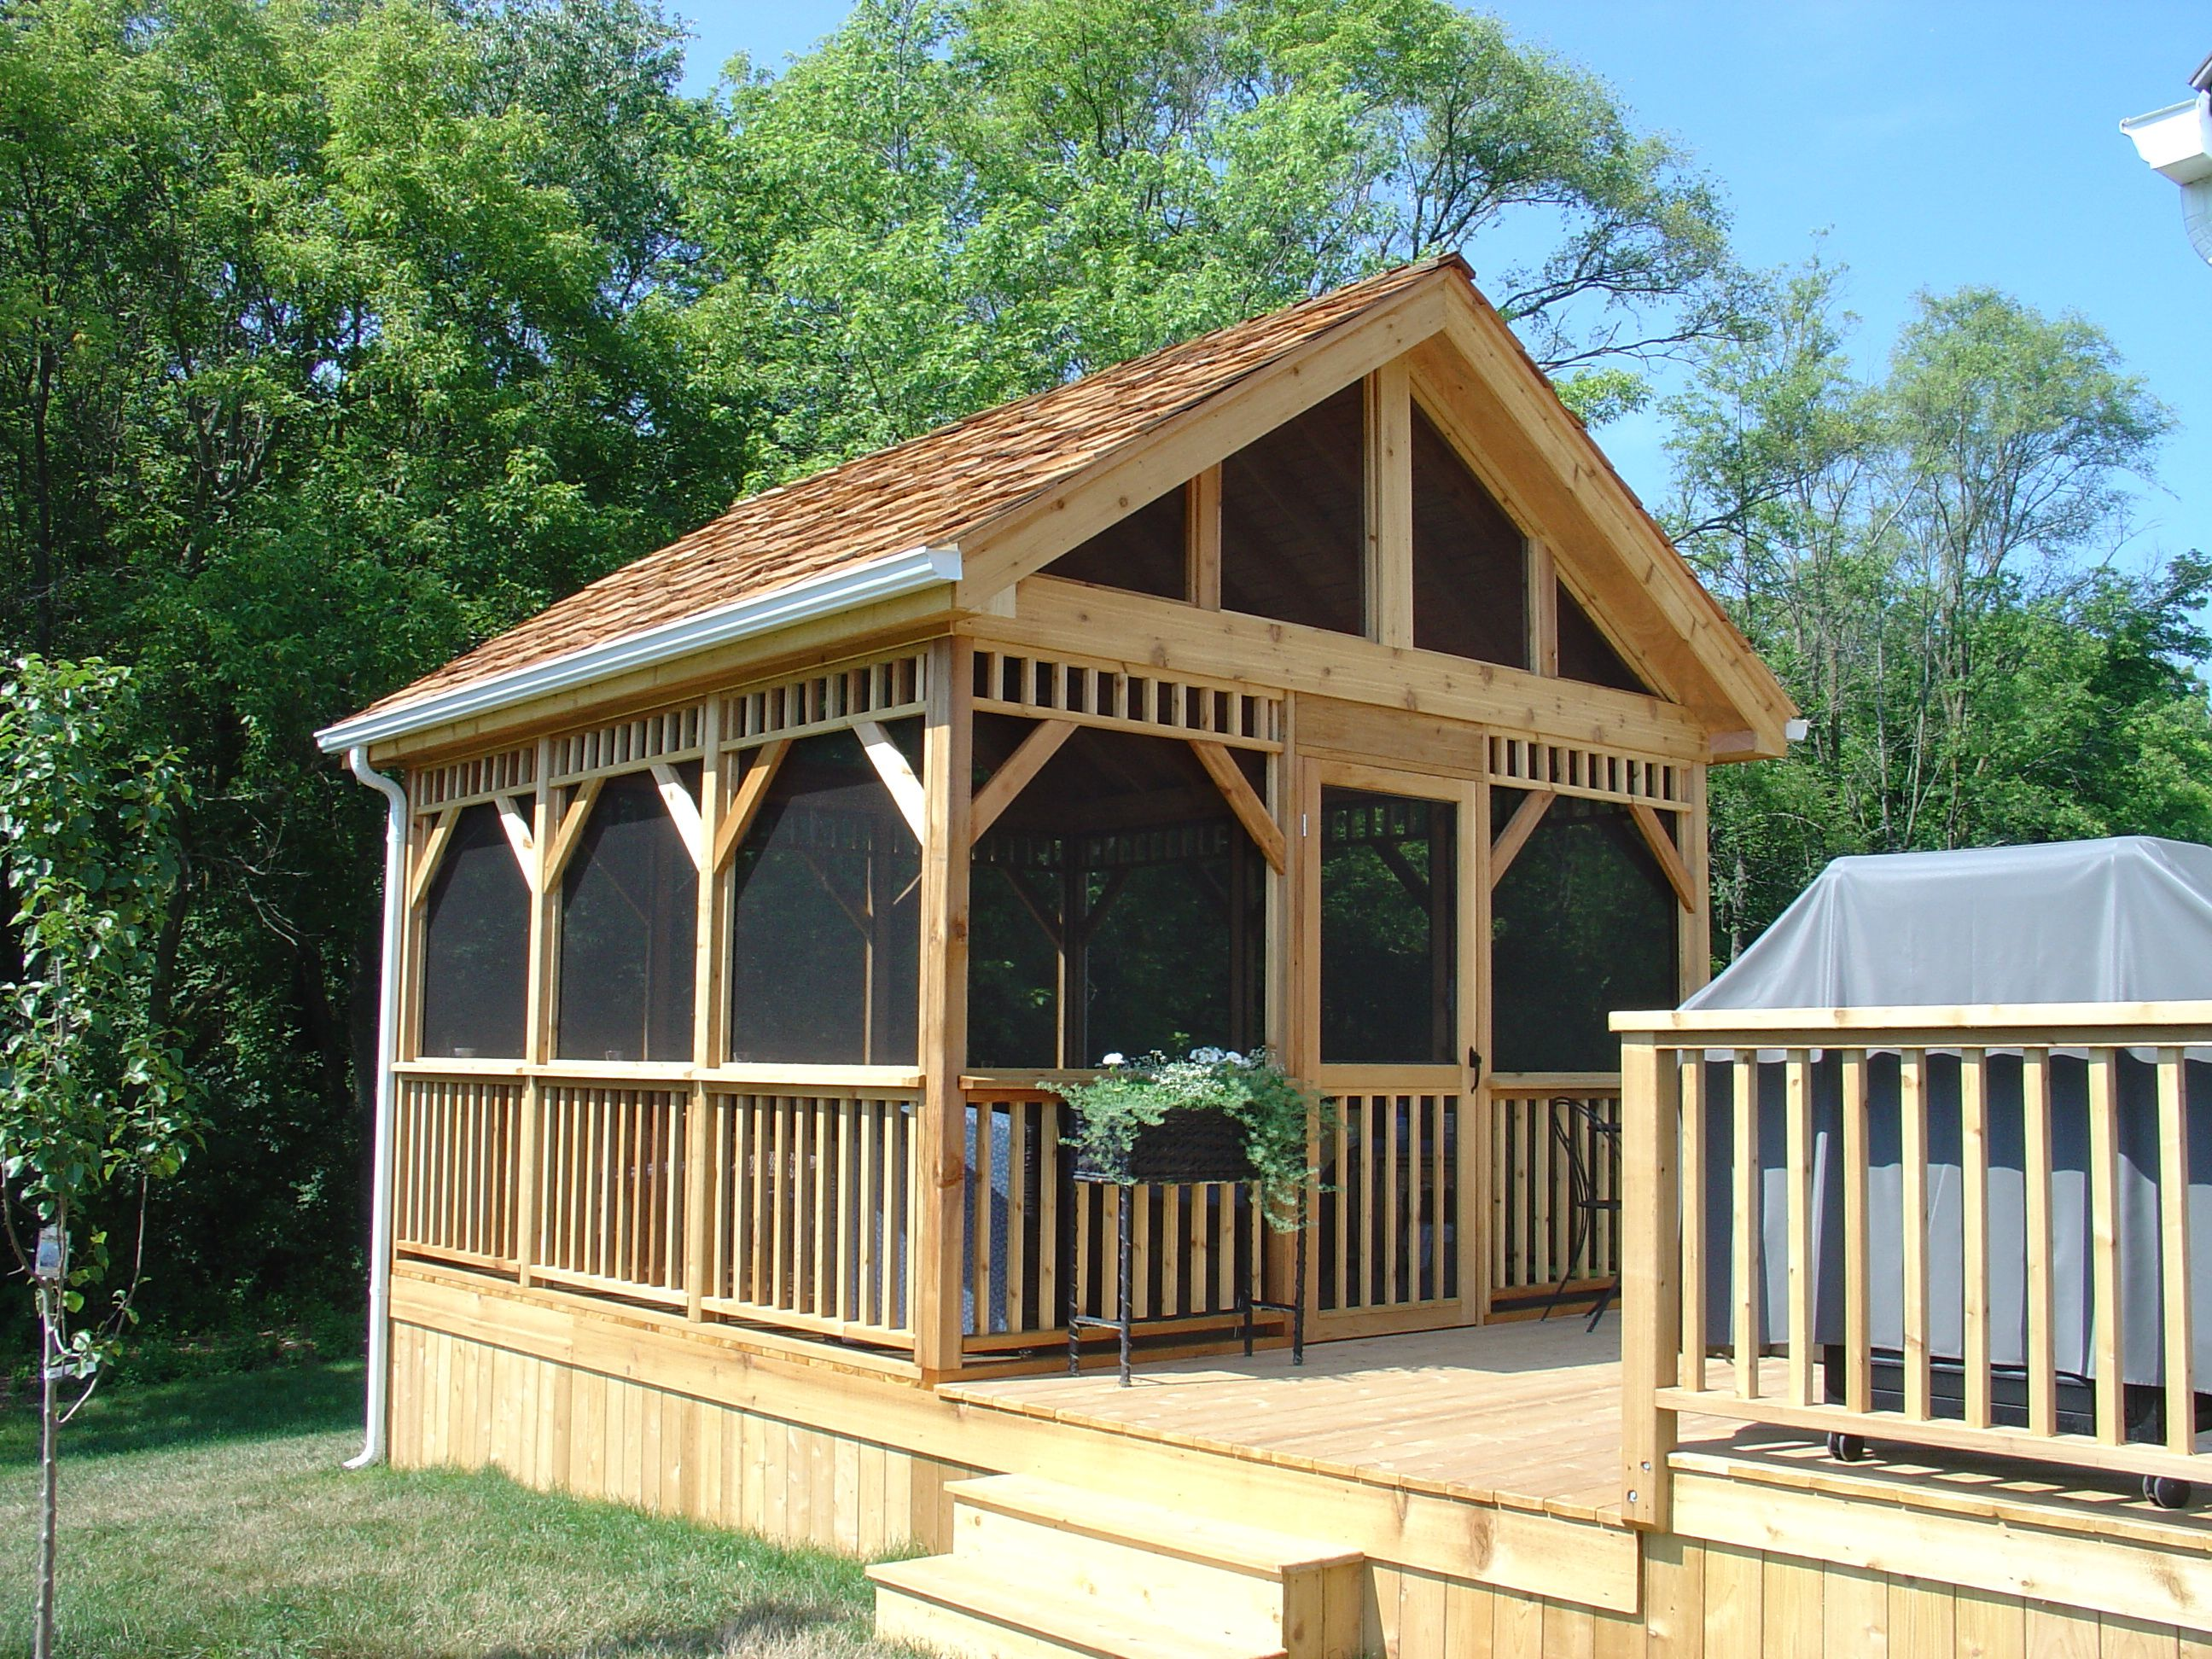 Hexagon cedar gazebo kit 8ft w86 - Hexagon Cedar Gazebo Kit 8ft W86 35